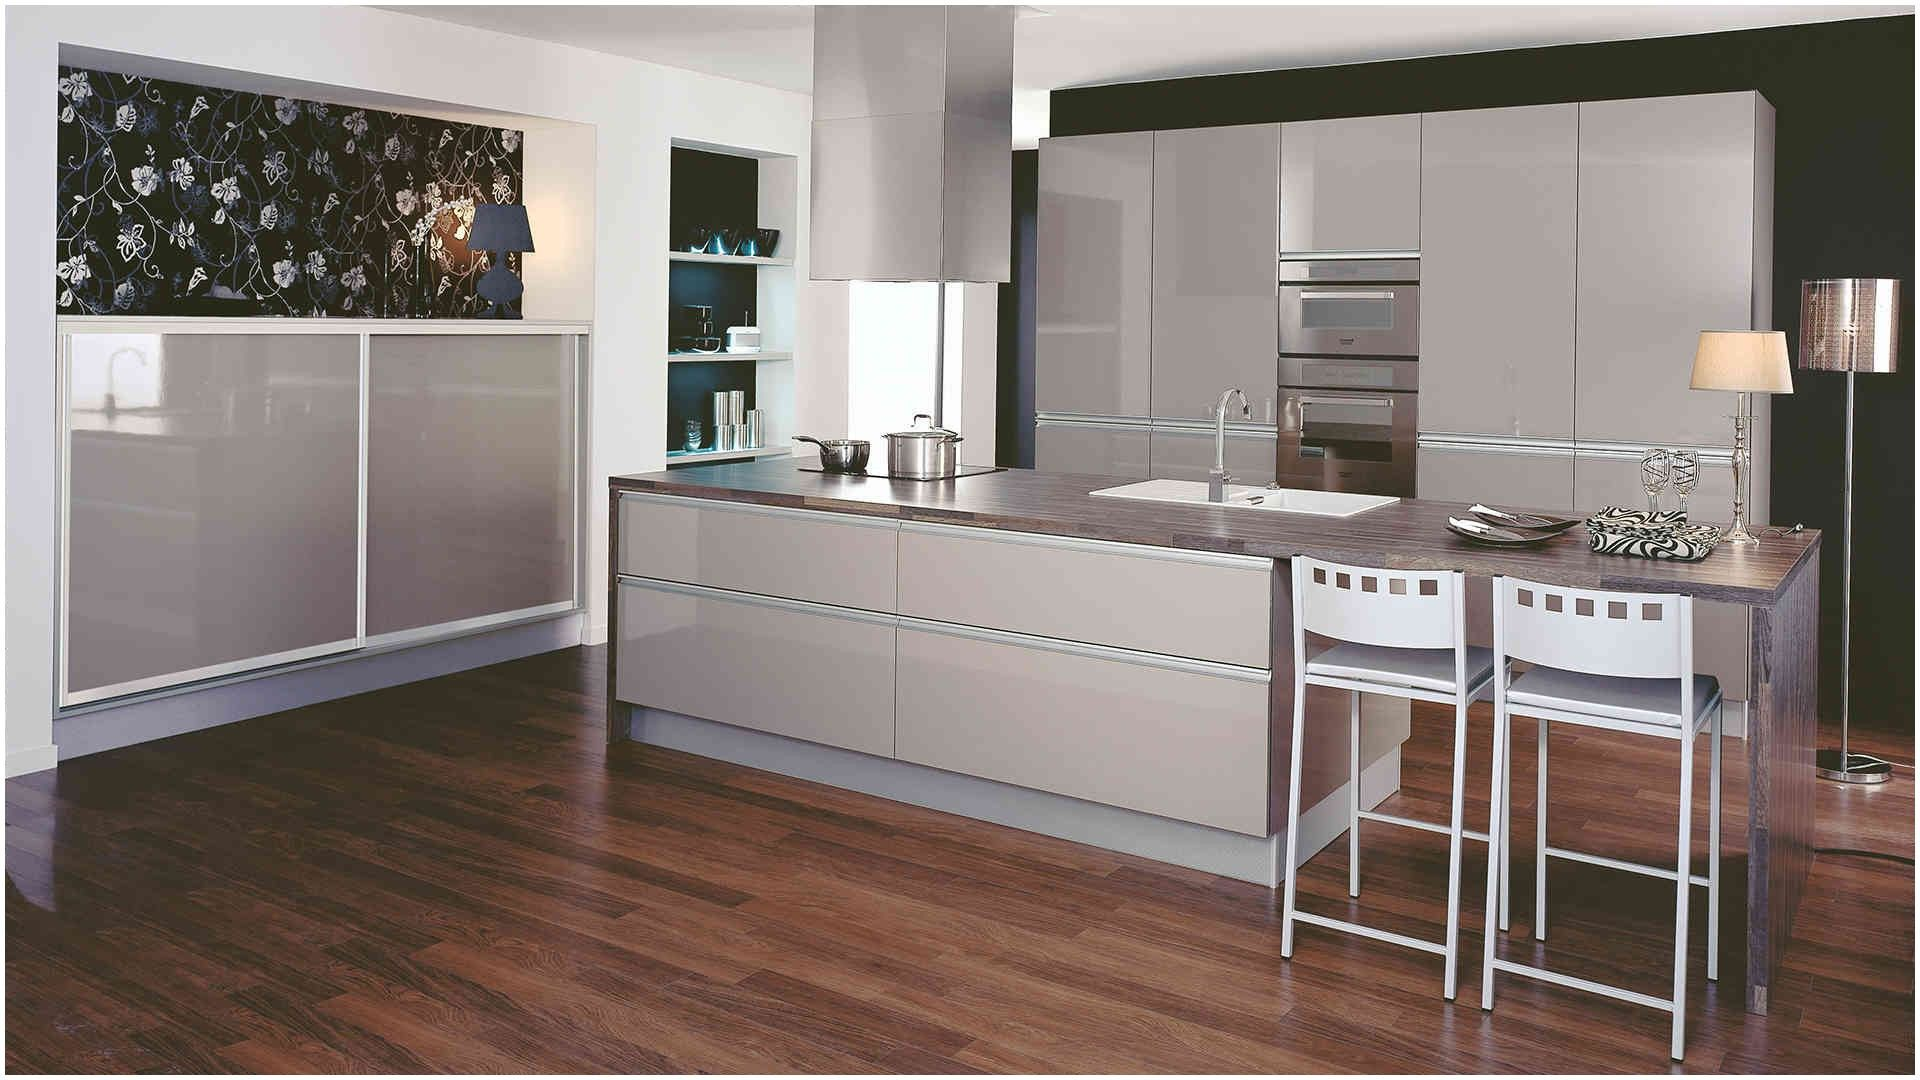 Best Of Cuisine équipée Taupe  Kitchen design, Kitchen, Home decor